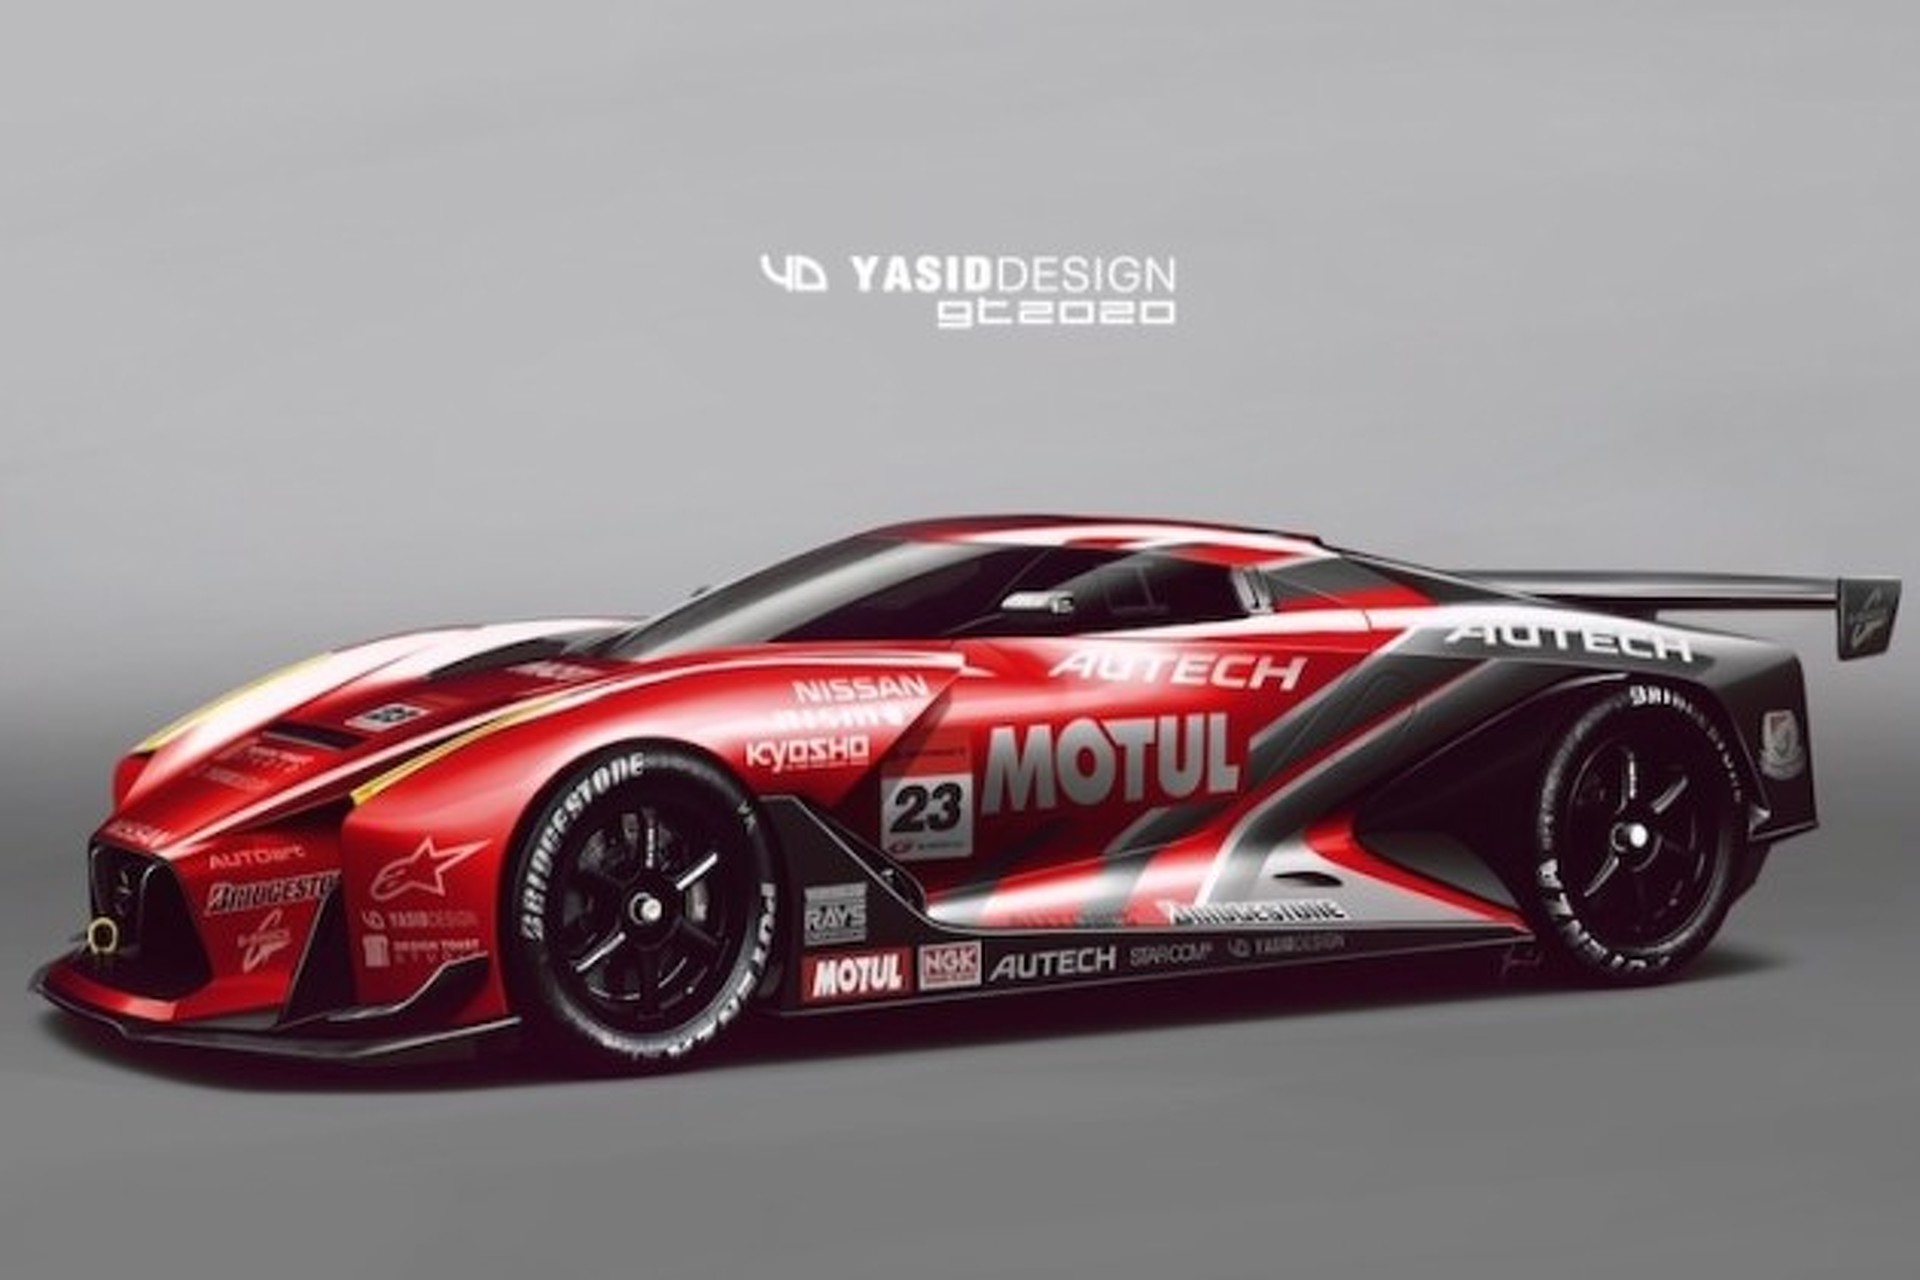 nissan 2020 gt concept covered in awesome racing livery motor1 com photos nissan 2020 gt concept covered in